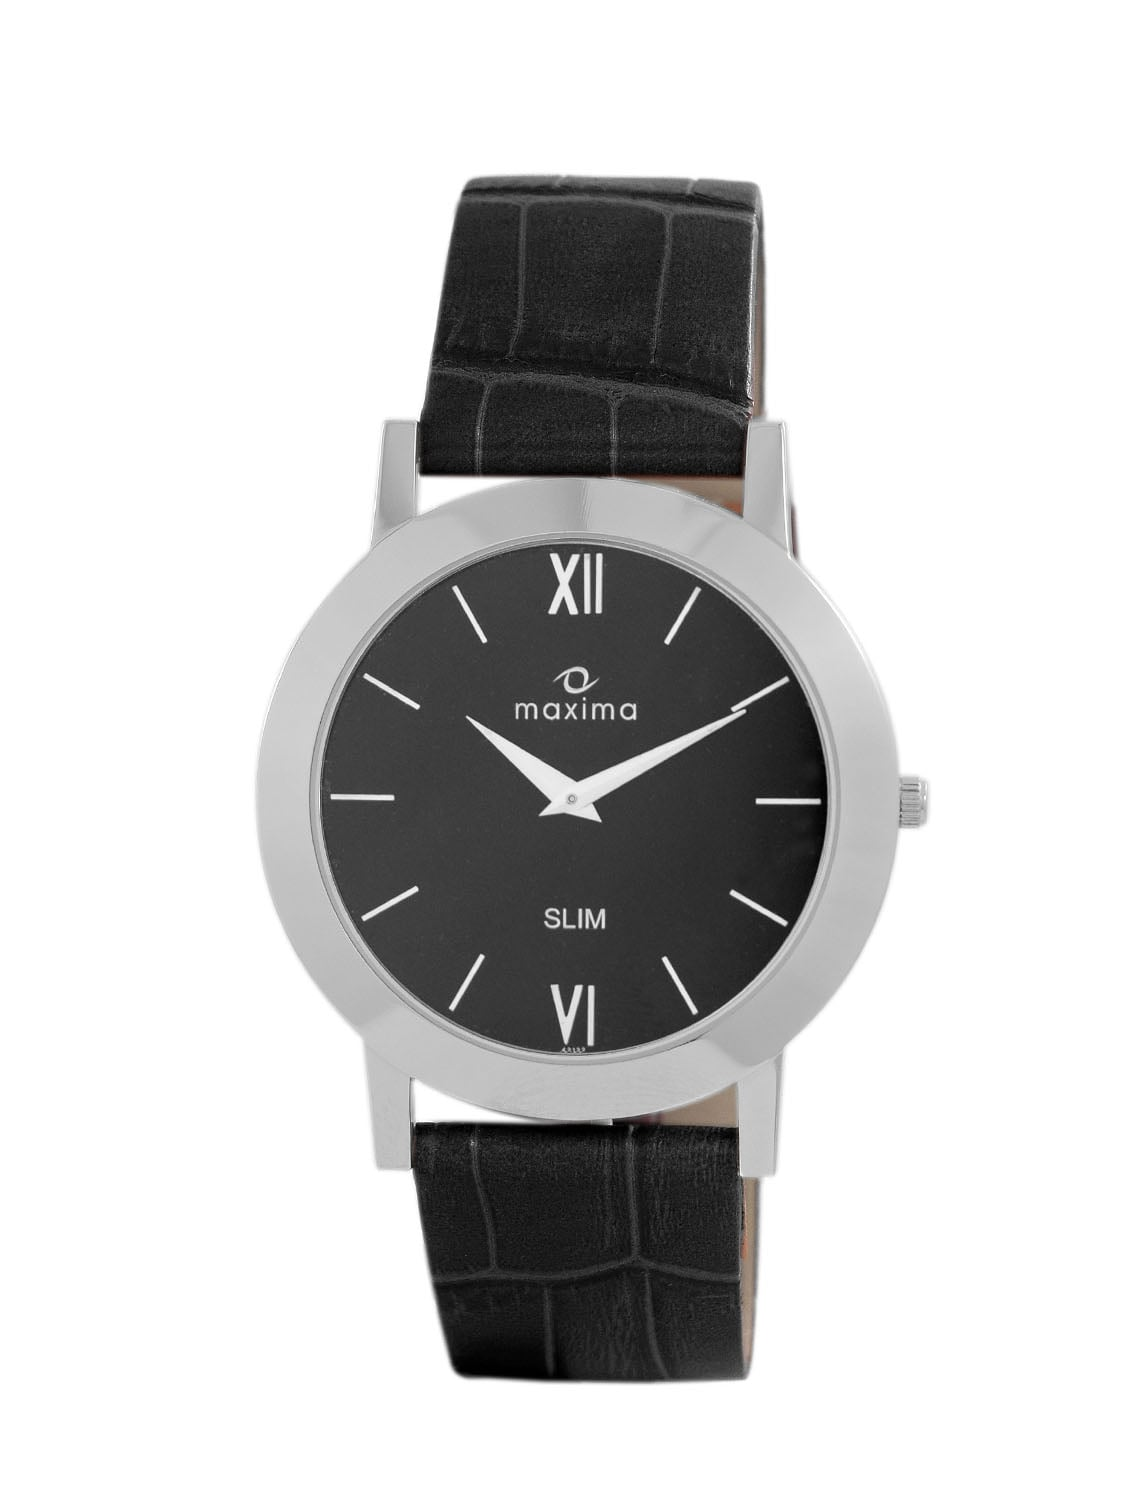 watches black hover by image this to watch explore over leather look silver men zoom buy online for shopping analog maxima